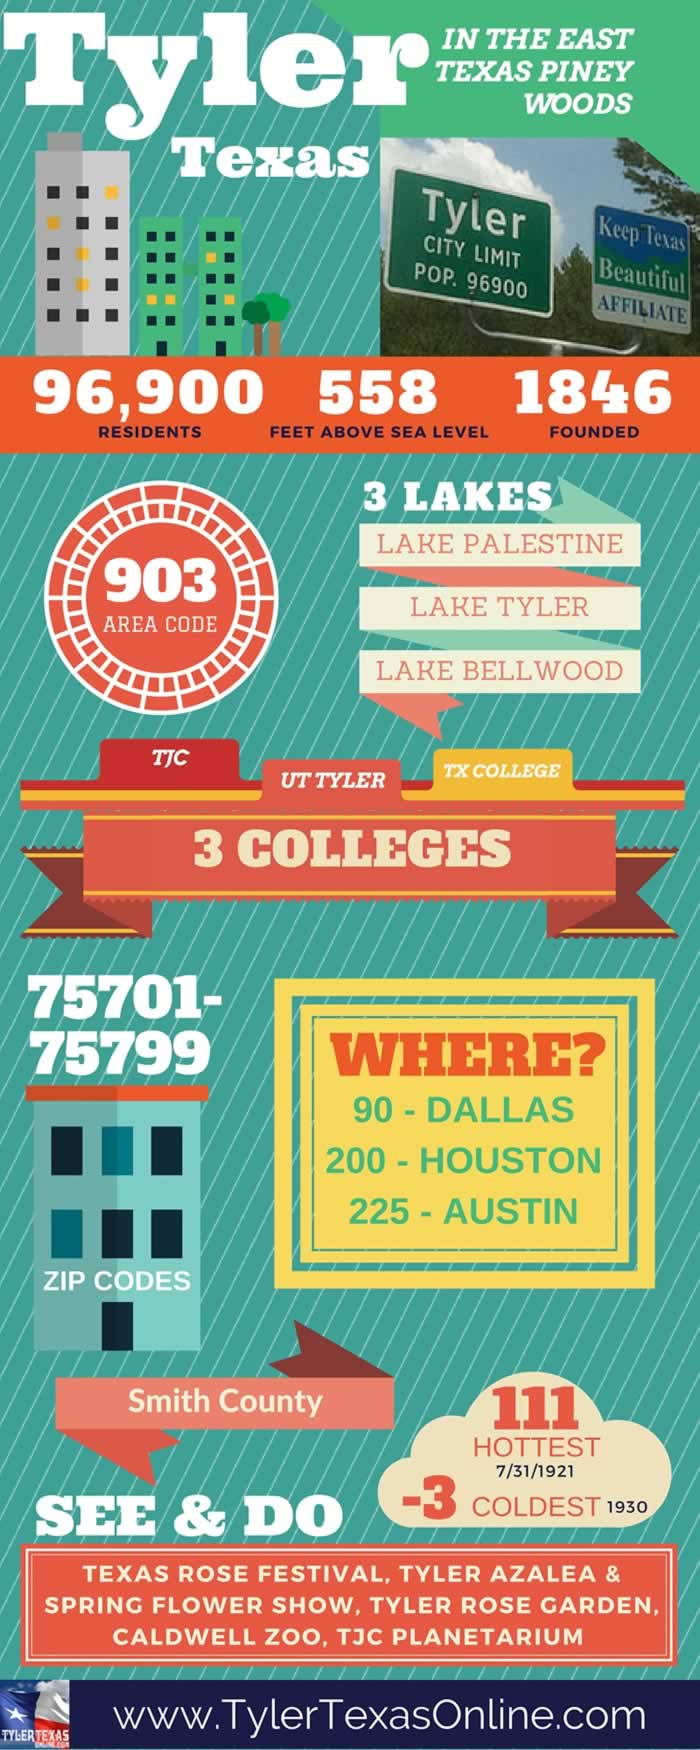 Tyler Texas infographic ... Pin to Facebook, Pinterest and other social media!